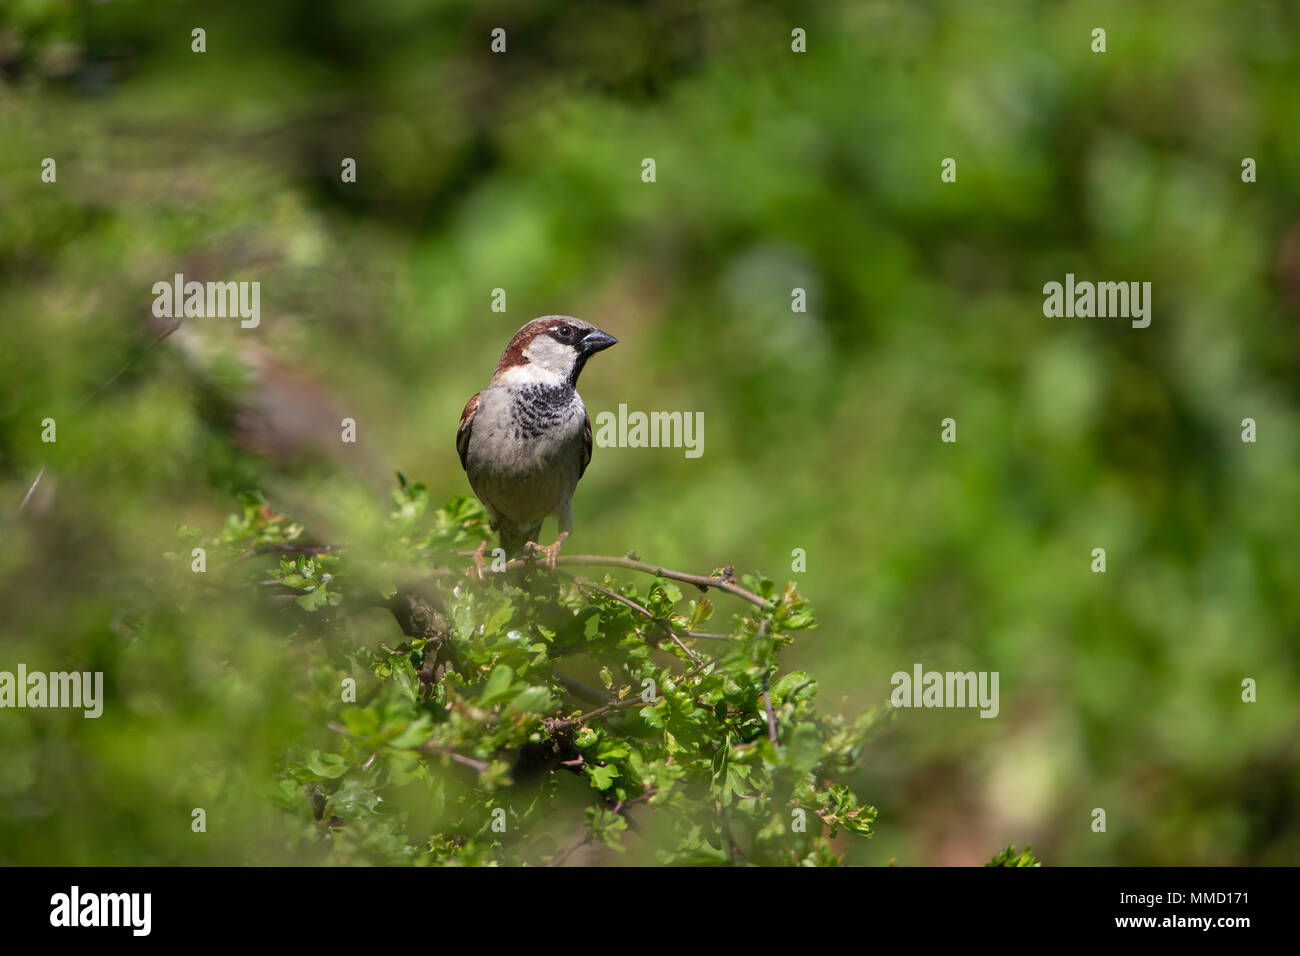 Male House Sparrow Passer Domesticus perched on a pyracantha plant against a green foliage background - Stock Image